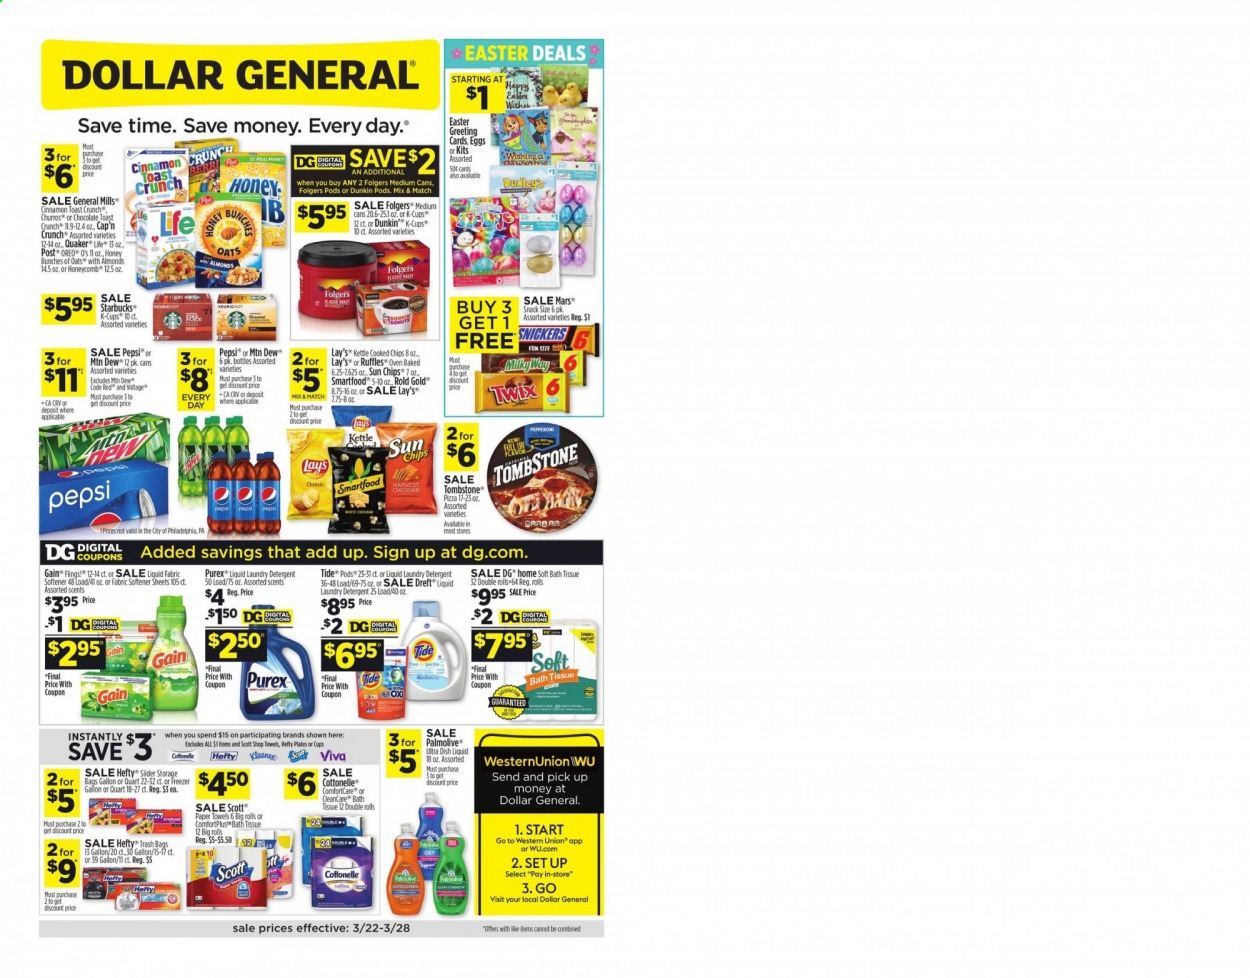 Dollar General Flyer - 03.22.2020 - 03.28.2020 - Sales products - Scott, toast bread, pizza, Quaker, pepperoni, Oreo, eggs, chocolate, Snickers, Twix, Mars, chips, snack, Lay's, Smartfood, Ruffles, oats, Churros, Cap'n Crunch, cinnamon, almonds, Mountain Dew, Pepsi, Starbucks, Folgers, coffee capsules, K-Cups, bath tissue, Cottonelle, kitchen towels, paper towels, detergent, Gain, Tide, fabric softener, laundry detergent, Purex, dishwashing liquid, Palmolive, Hefty, trash bags, plate, sheet, freezer, oven, kettle, cap, bag, Bunches, car battery. Page 1.